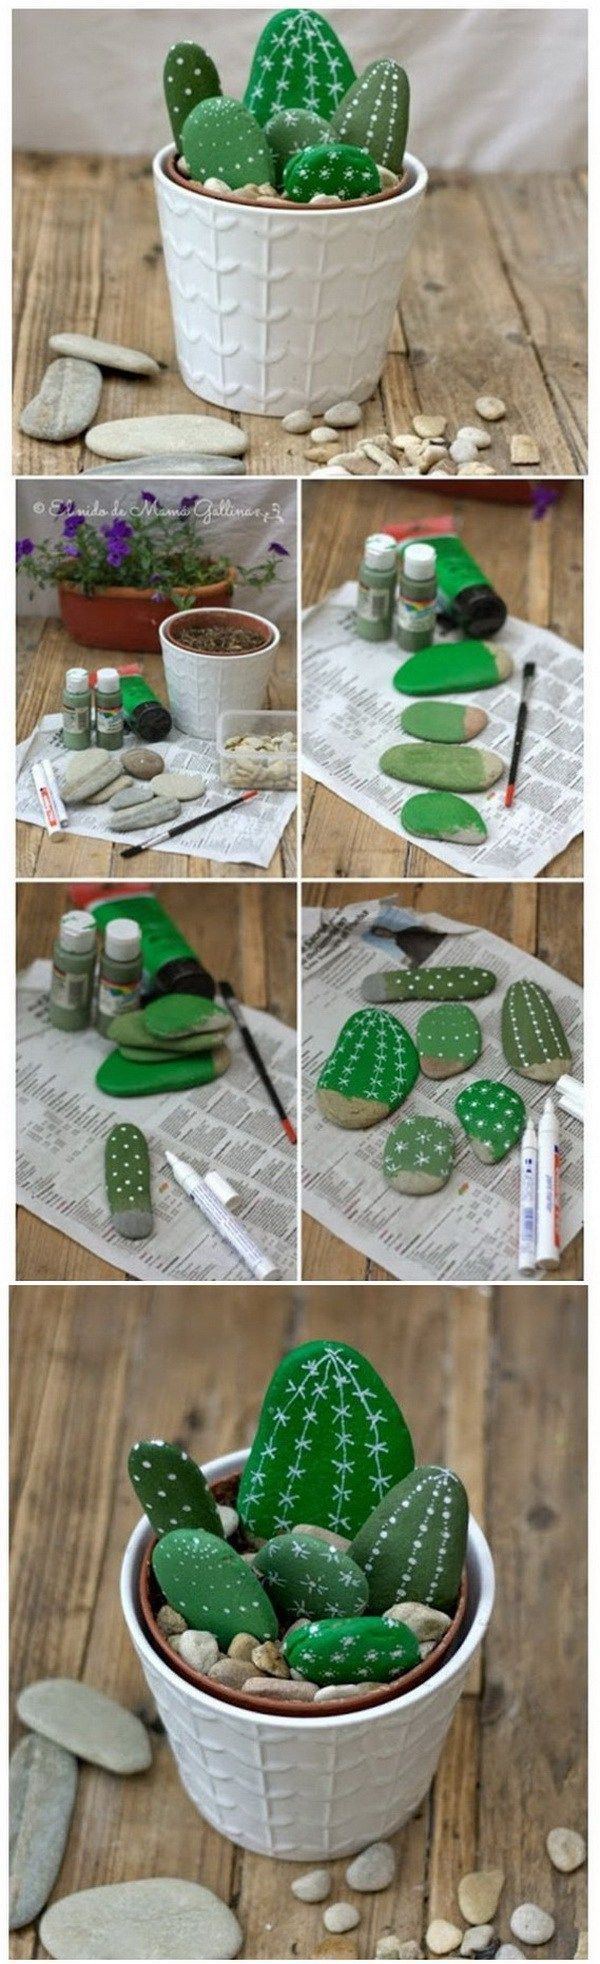 Homemade garden art ideas - Try These Best Diy Projects For Your Home Decoration Homemade Centerpieceshomemade Garden